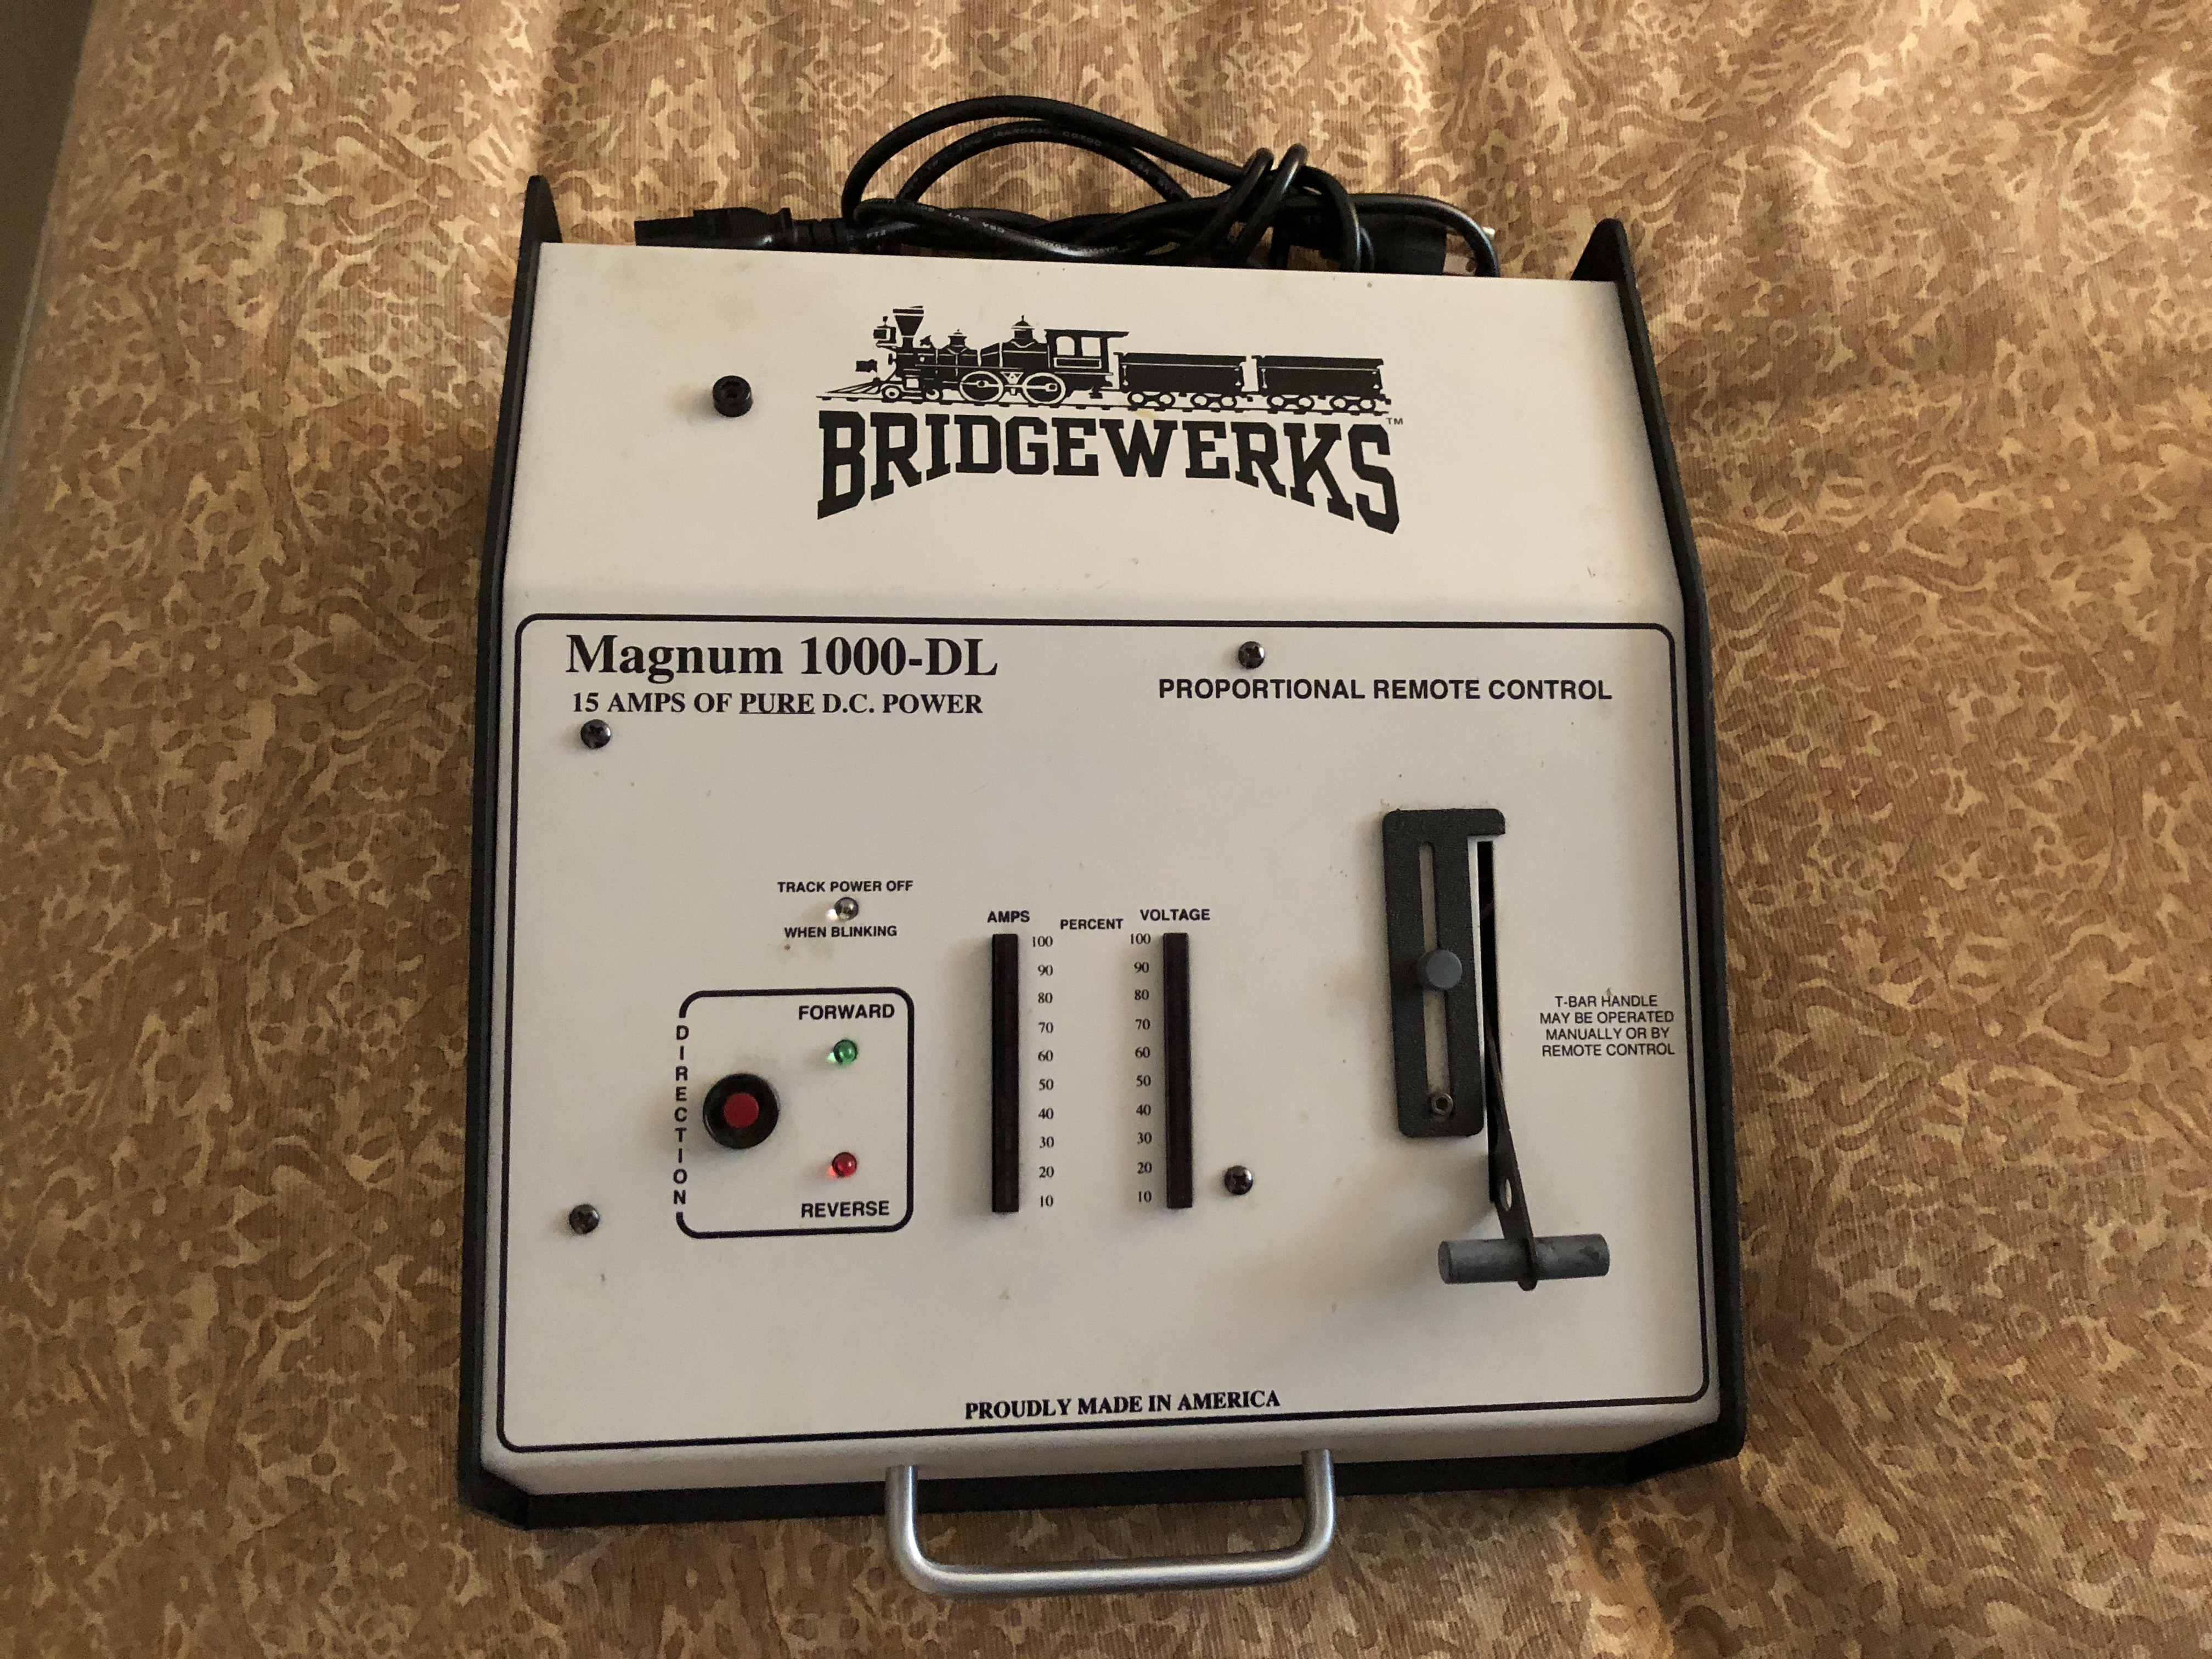 Buy Bridgewerks Magnum 1000-DL Manual Controller | Trainz